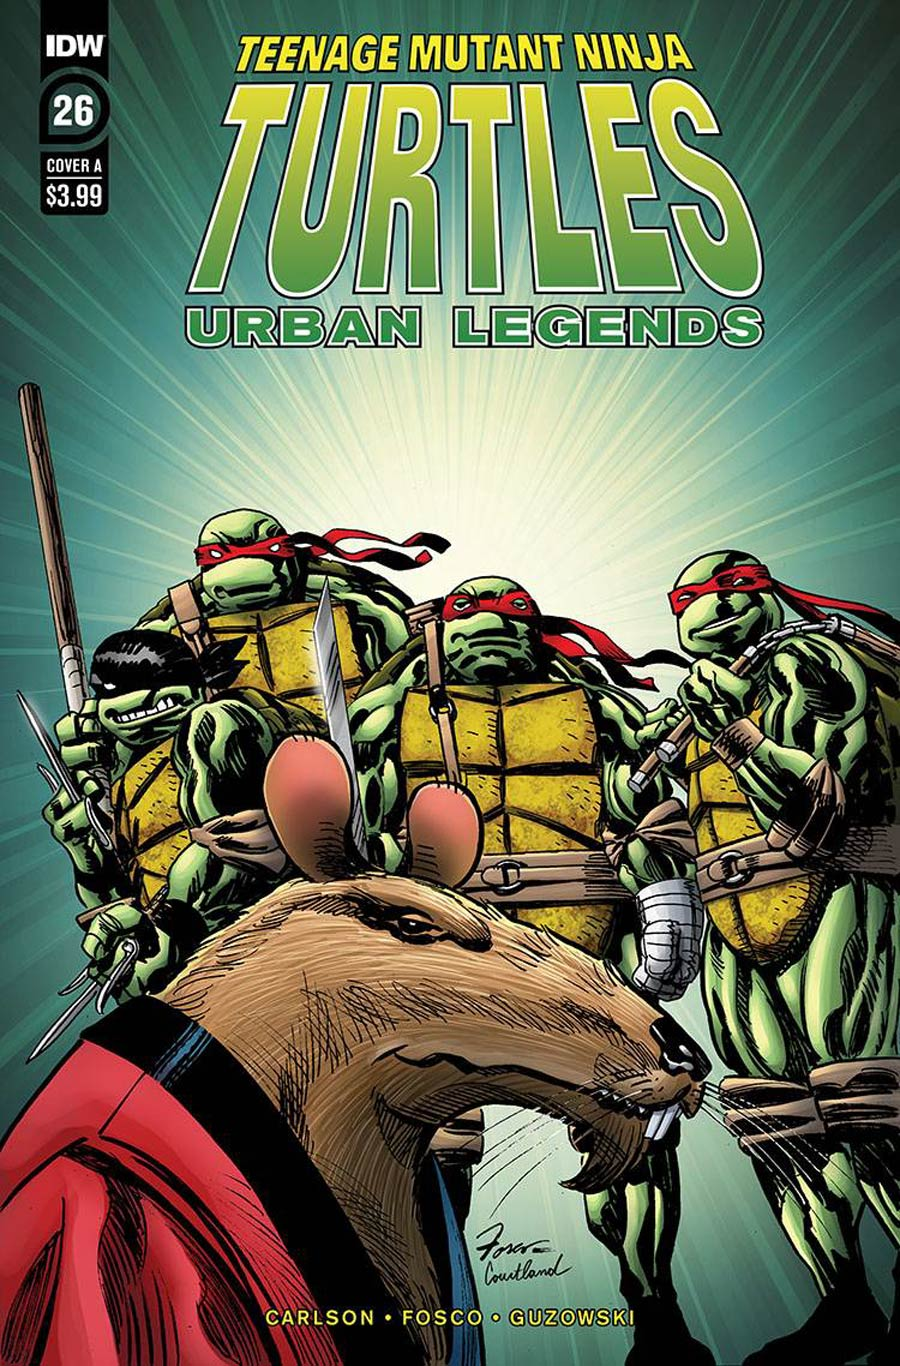 Teenage Mutant Ninja Turtles Urban Legends #26 Cover A Regular Frank Fosco Cover